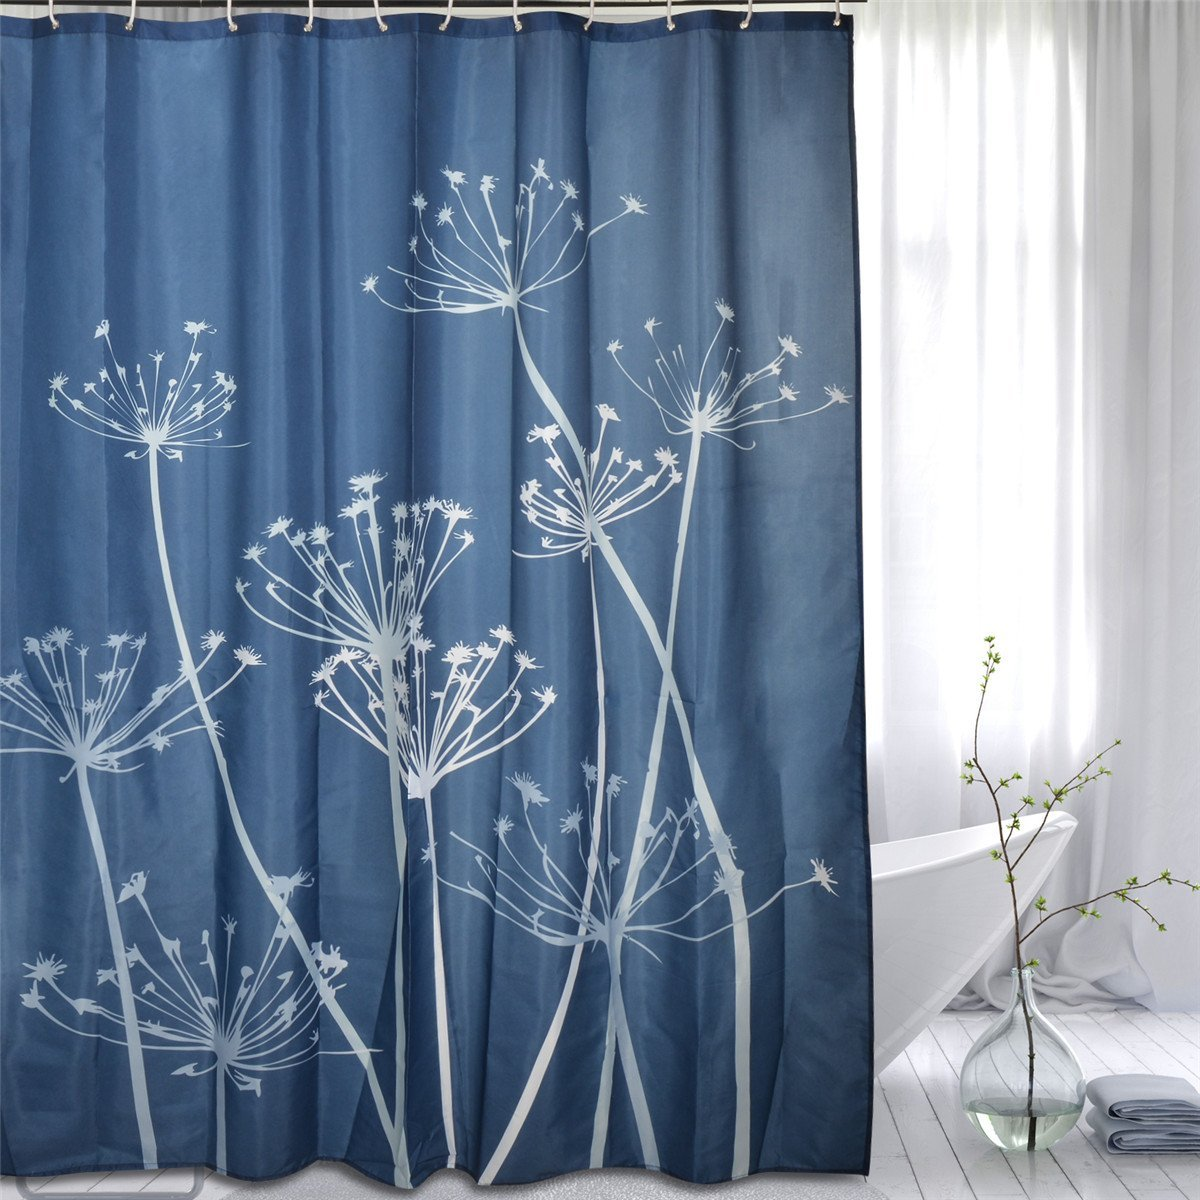 FashionMall Mildew Resistant Polyester Fabric Shower Curtain 72-Inch by 72-Inch Dandelion Anti-bacterial Waterproof Water-Repellent With 12 Hooks (72-Inch by 72-Inch, Blue)